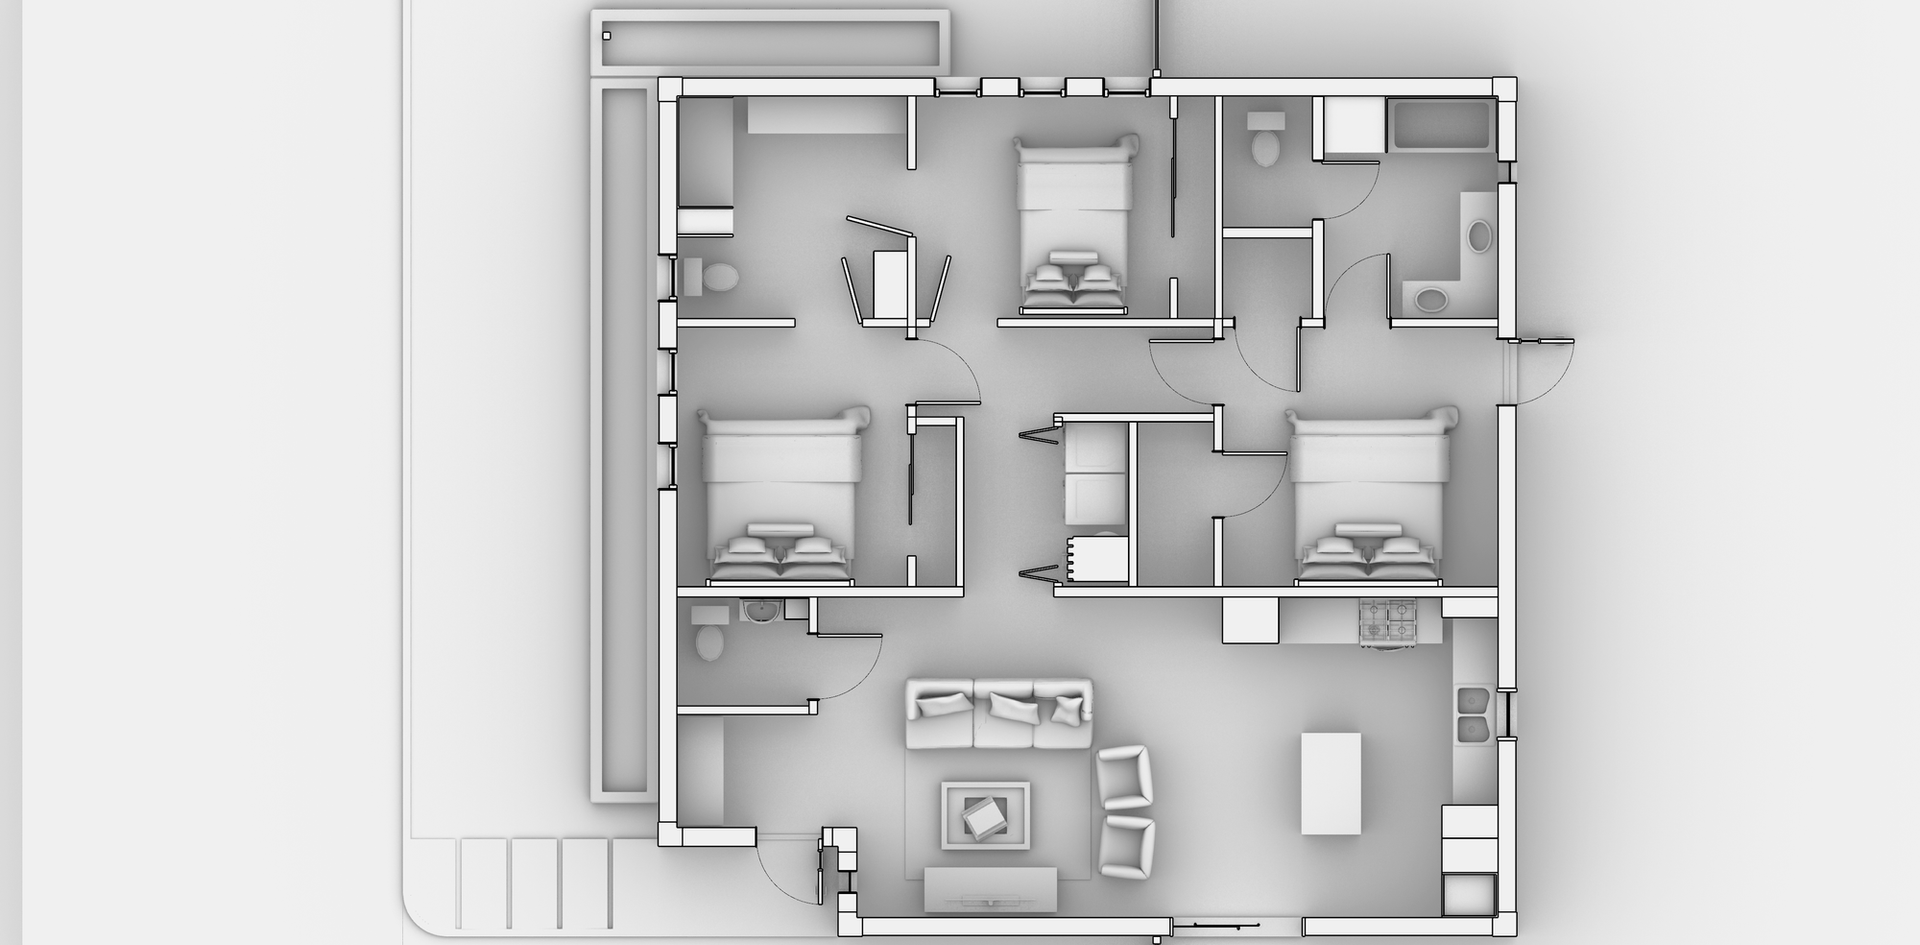 Large Floorplan.png